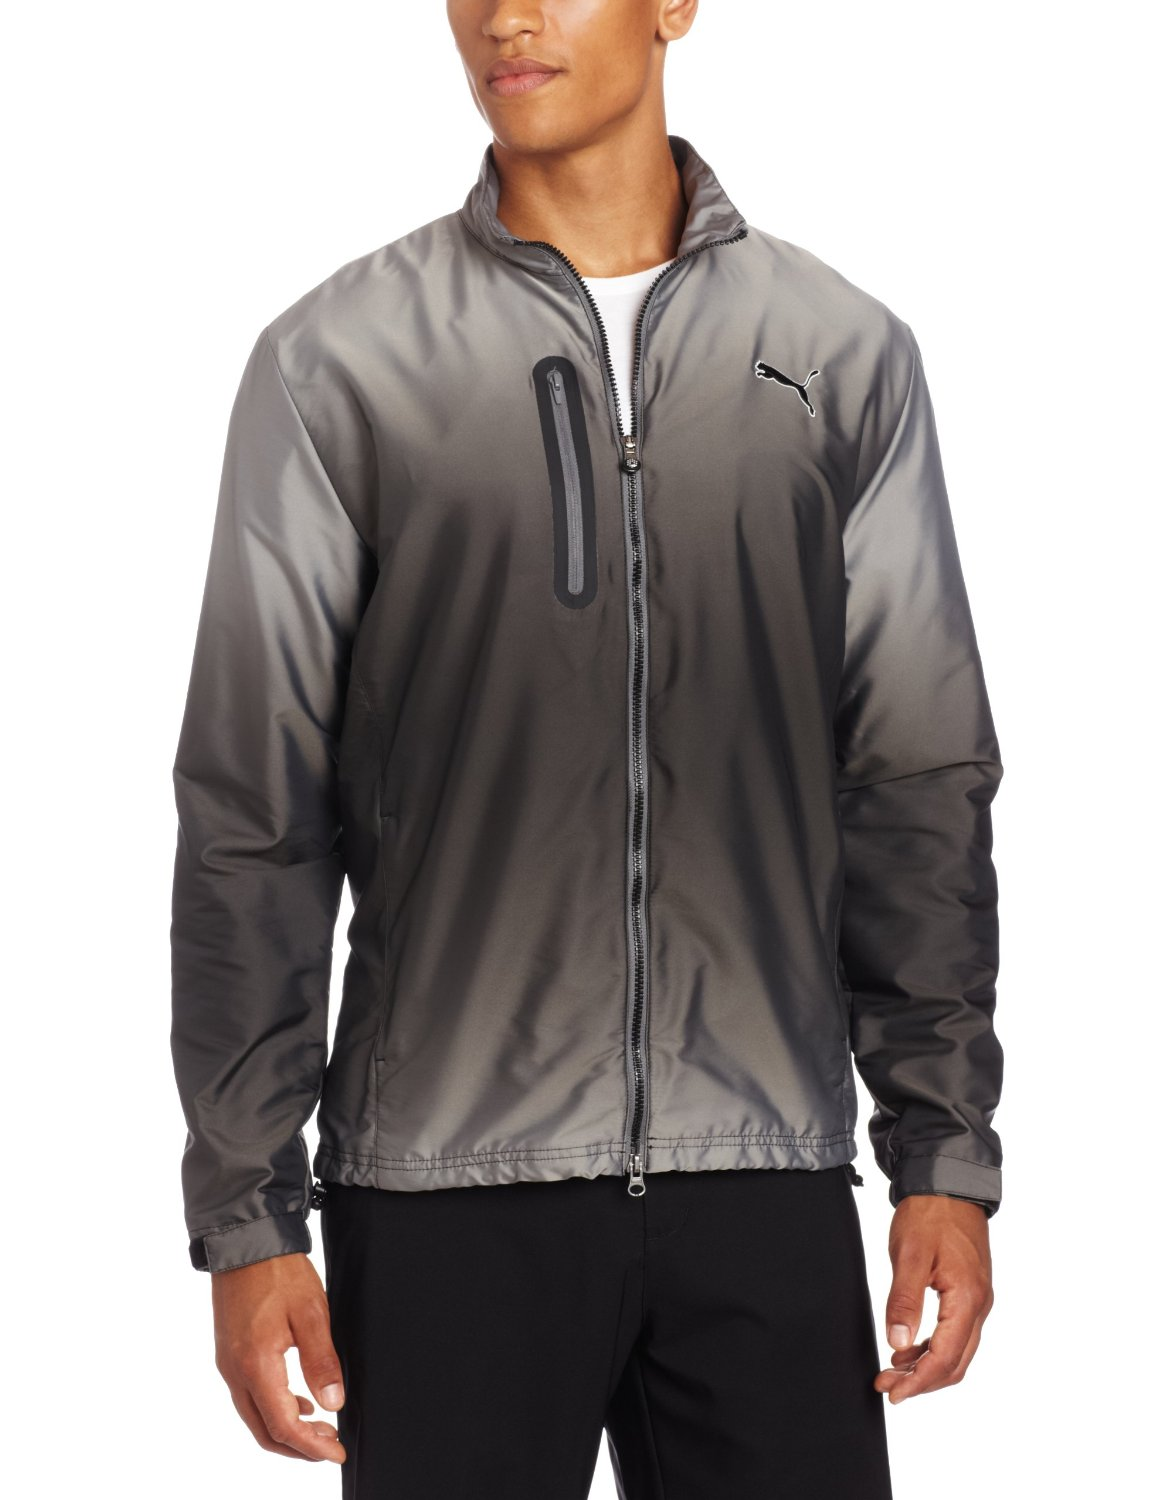 Puma Mens Golf Jackets